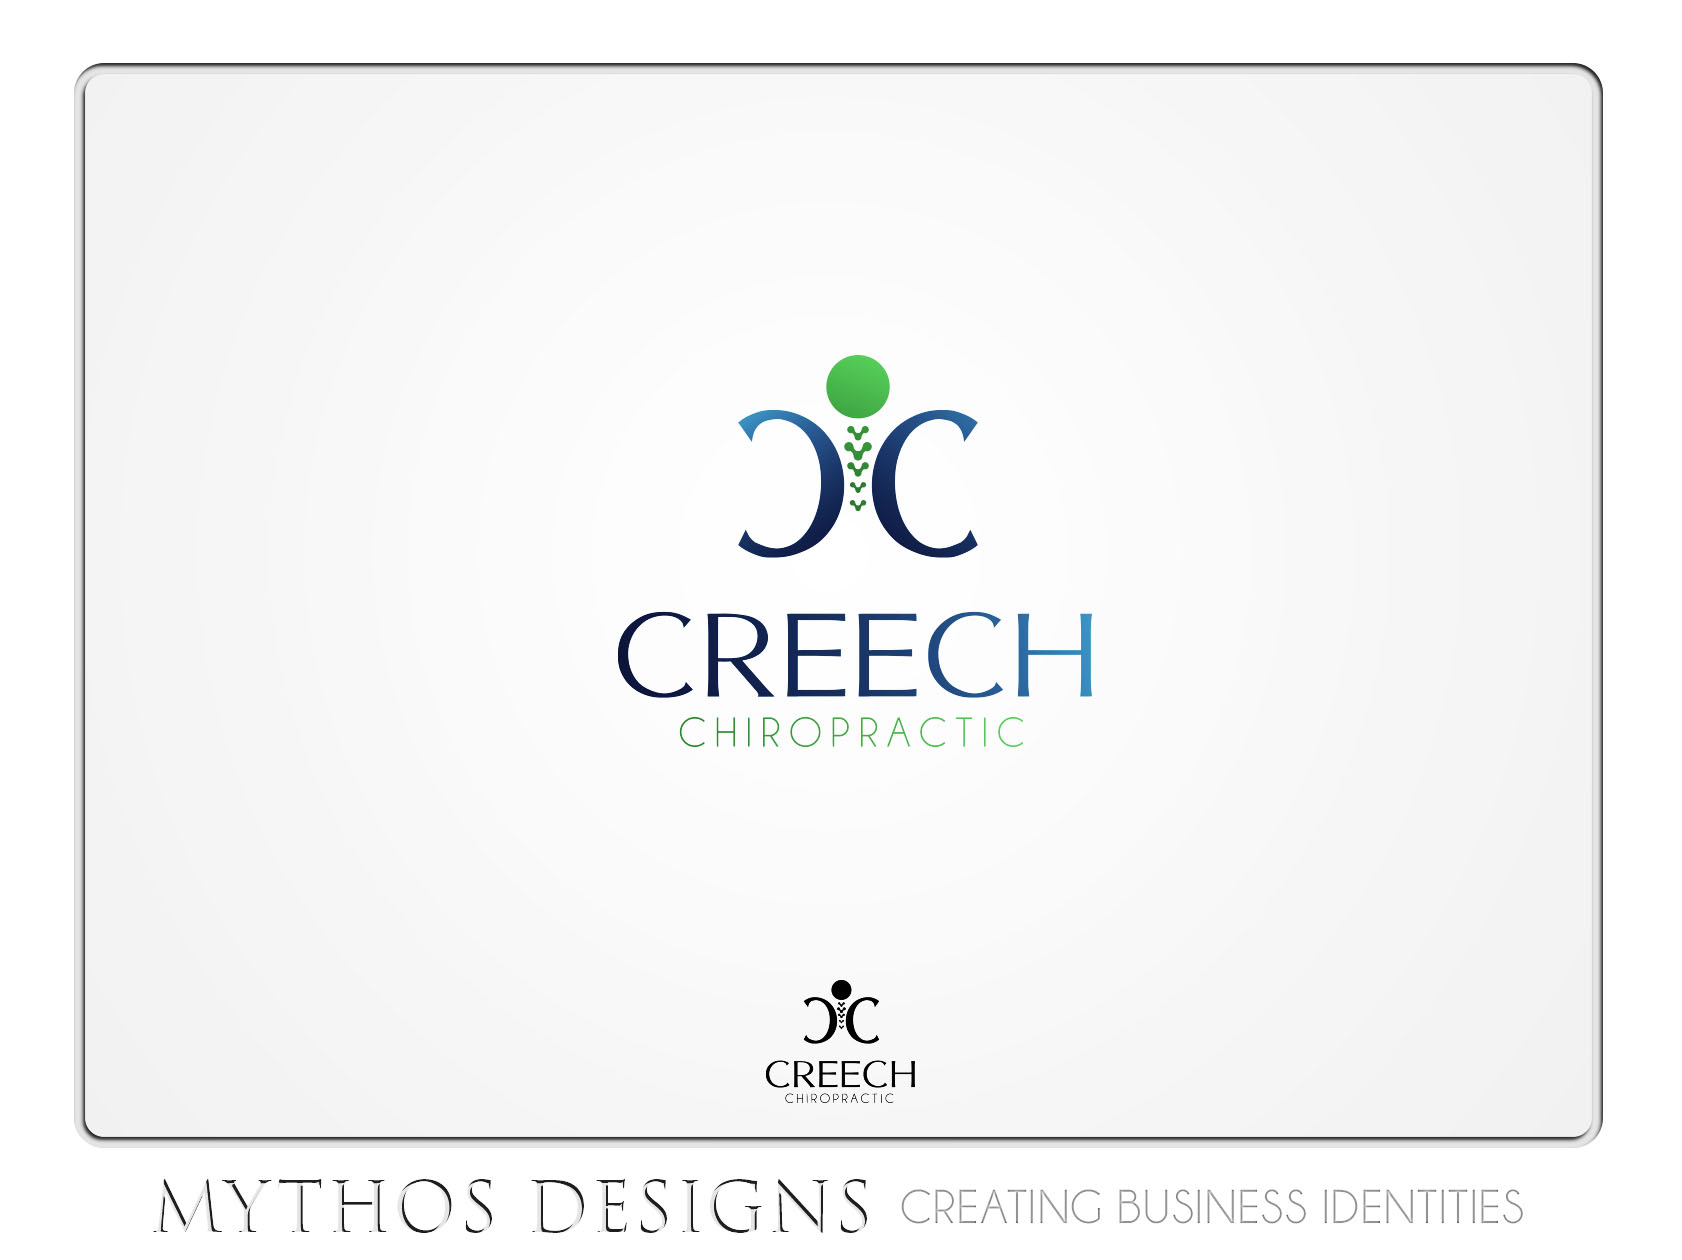 Logo Design by Mythos Designs - Entry No. 84 in the Logo Design Contest Imaginative Logo Design for Creech Chiropractic.